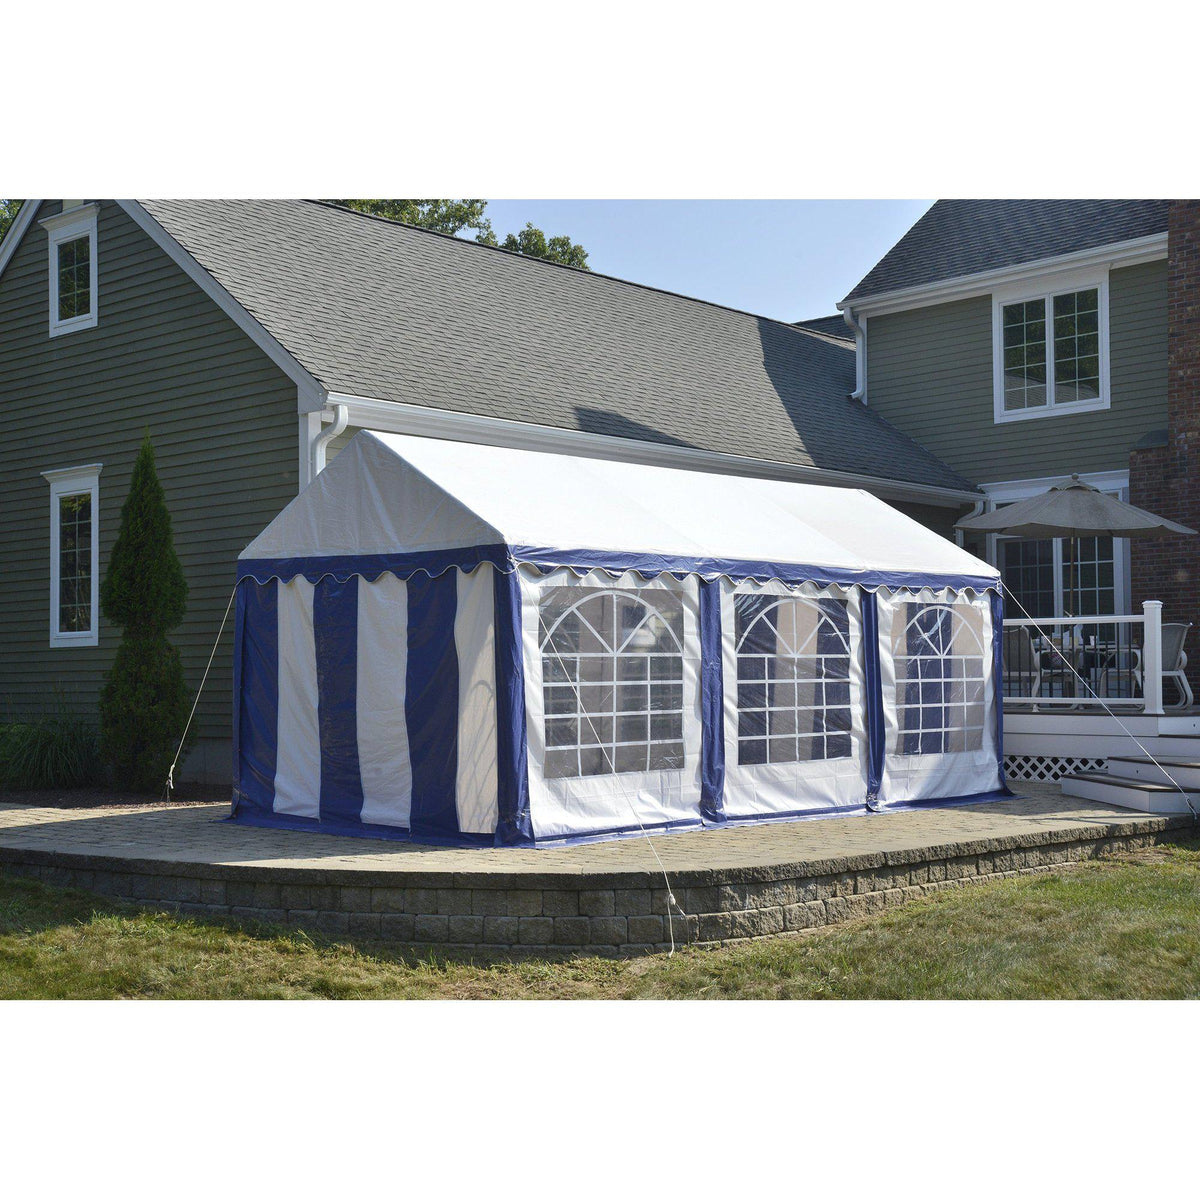 ShelterLogic Party Tent with Enclosure Kit, Blue/White, 10 x 20 ft.